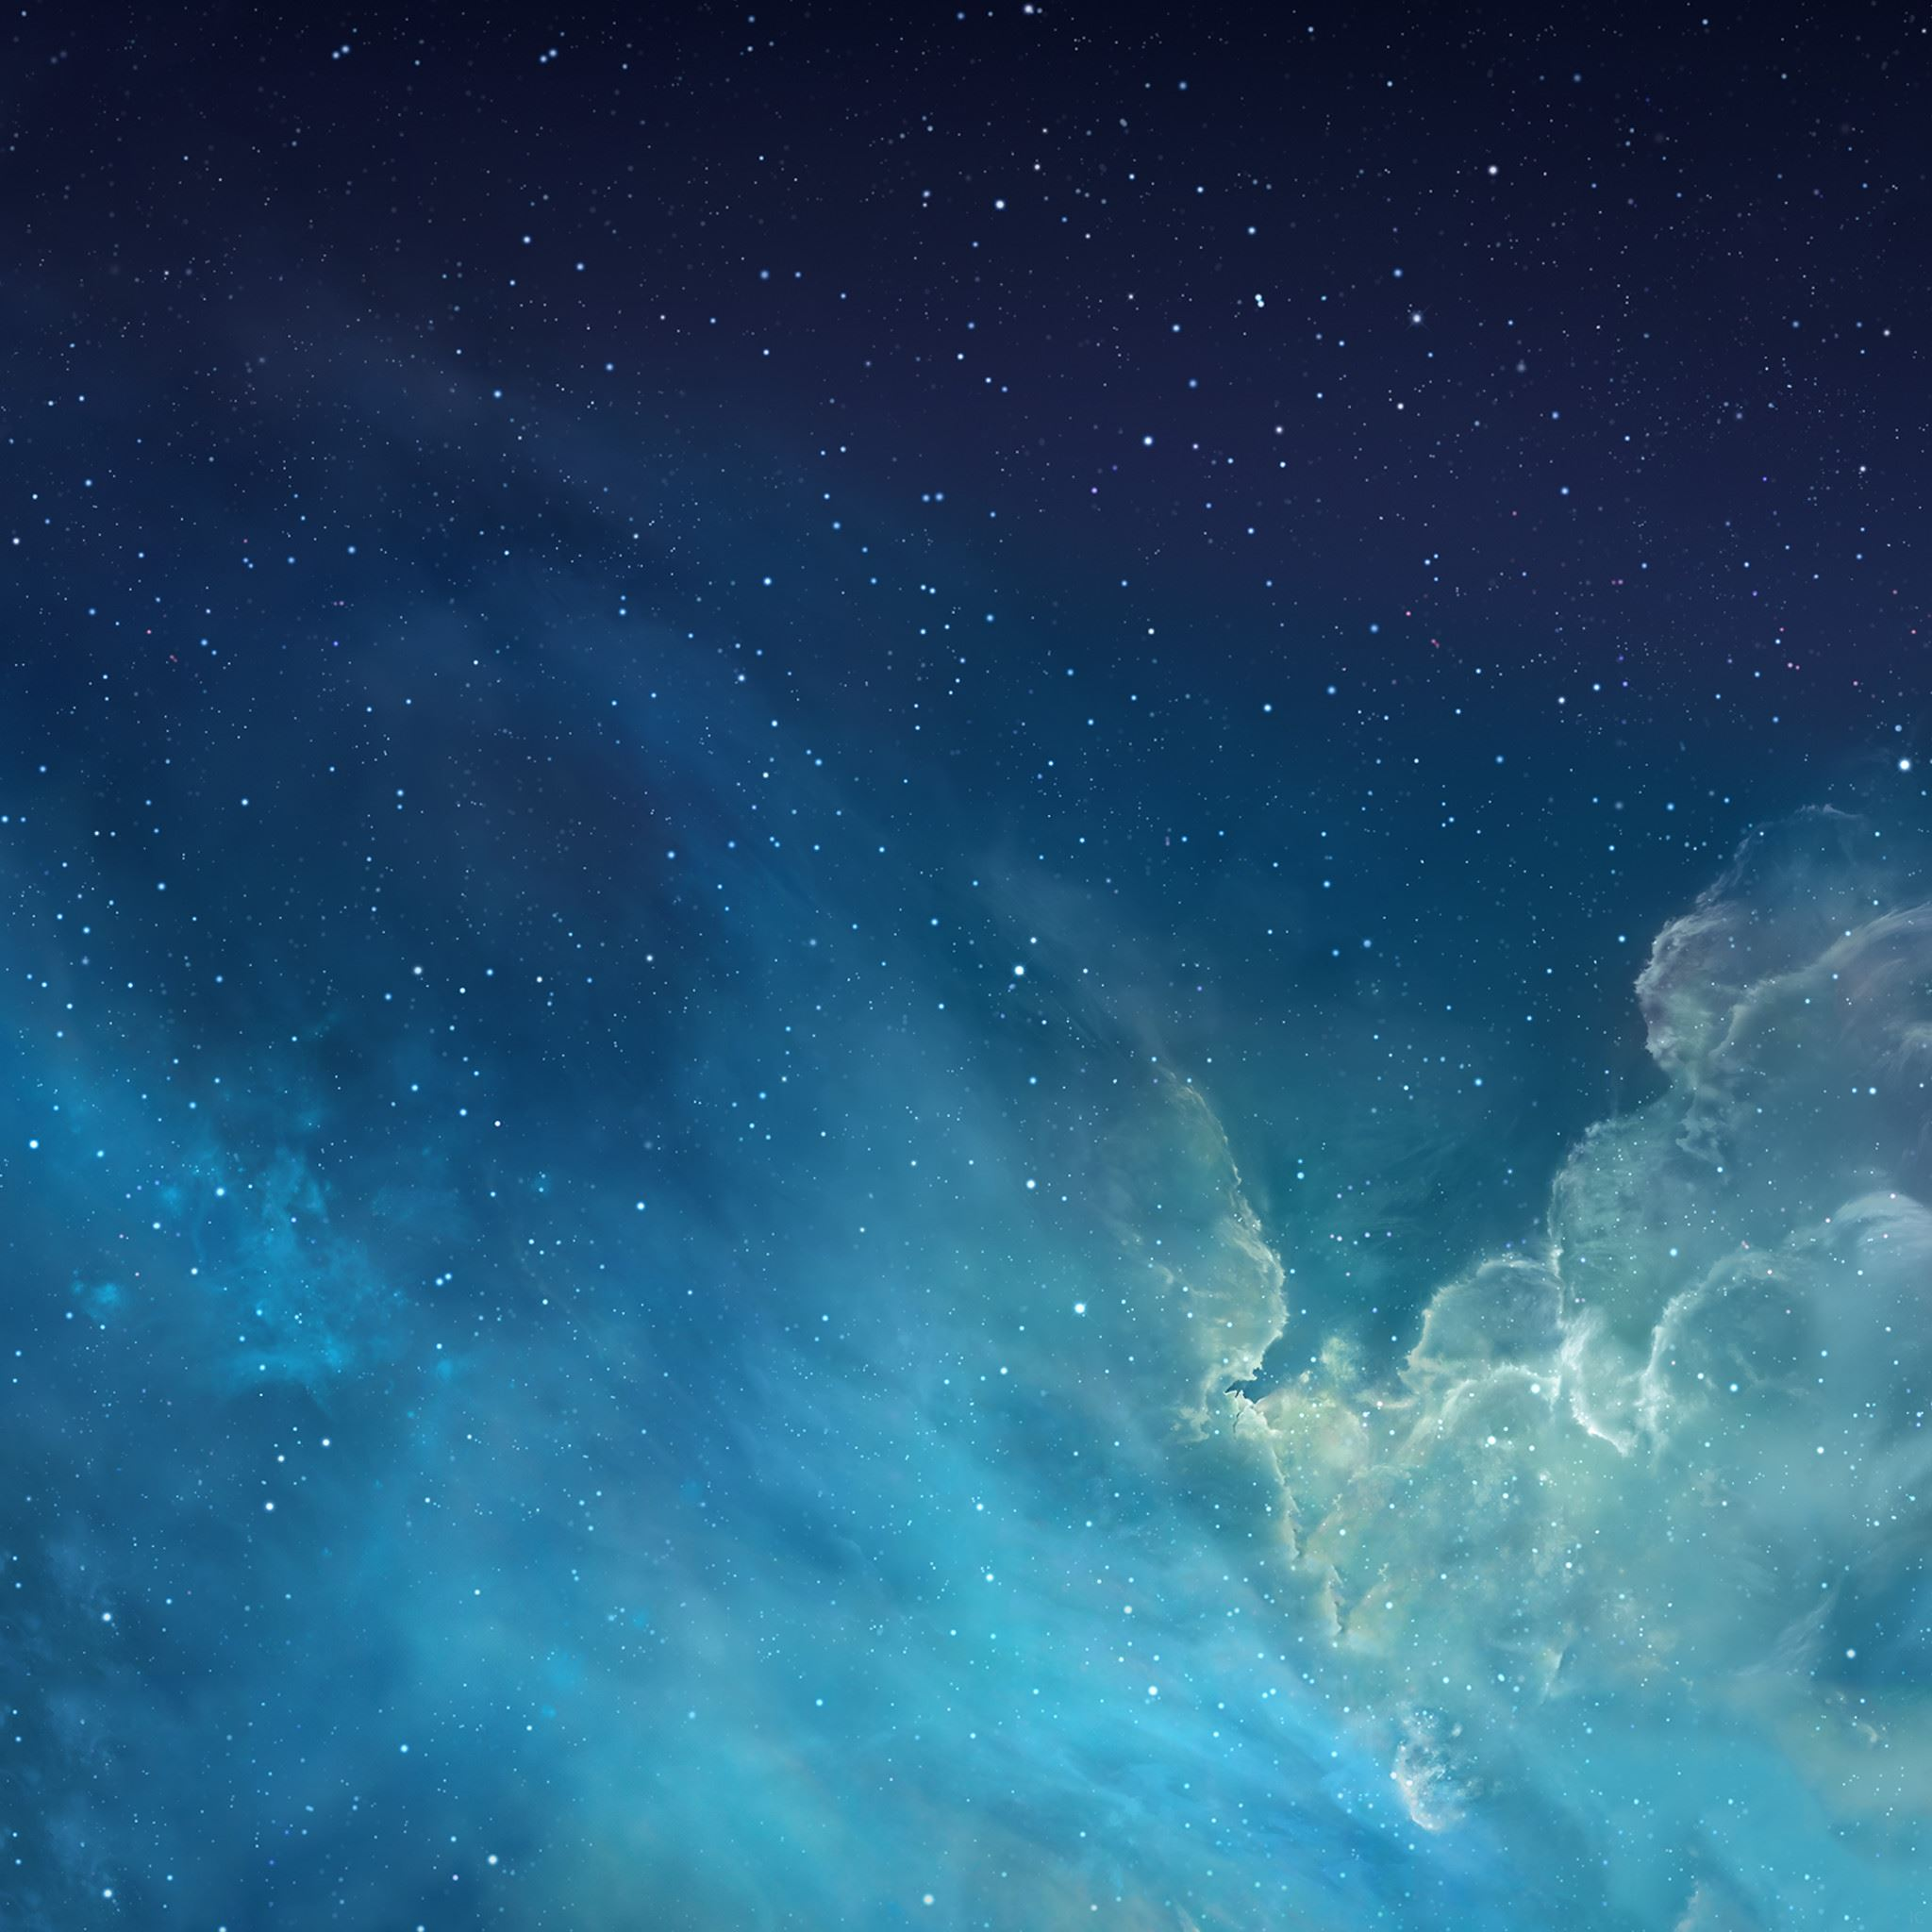 Fantasy Shiny Starry Outer Space Universe iPad Air wallpaper